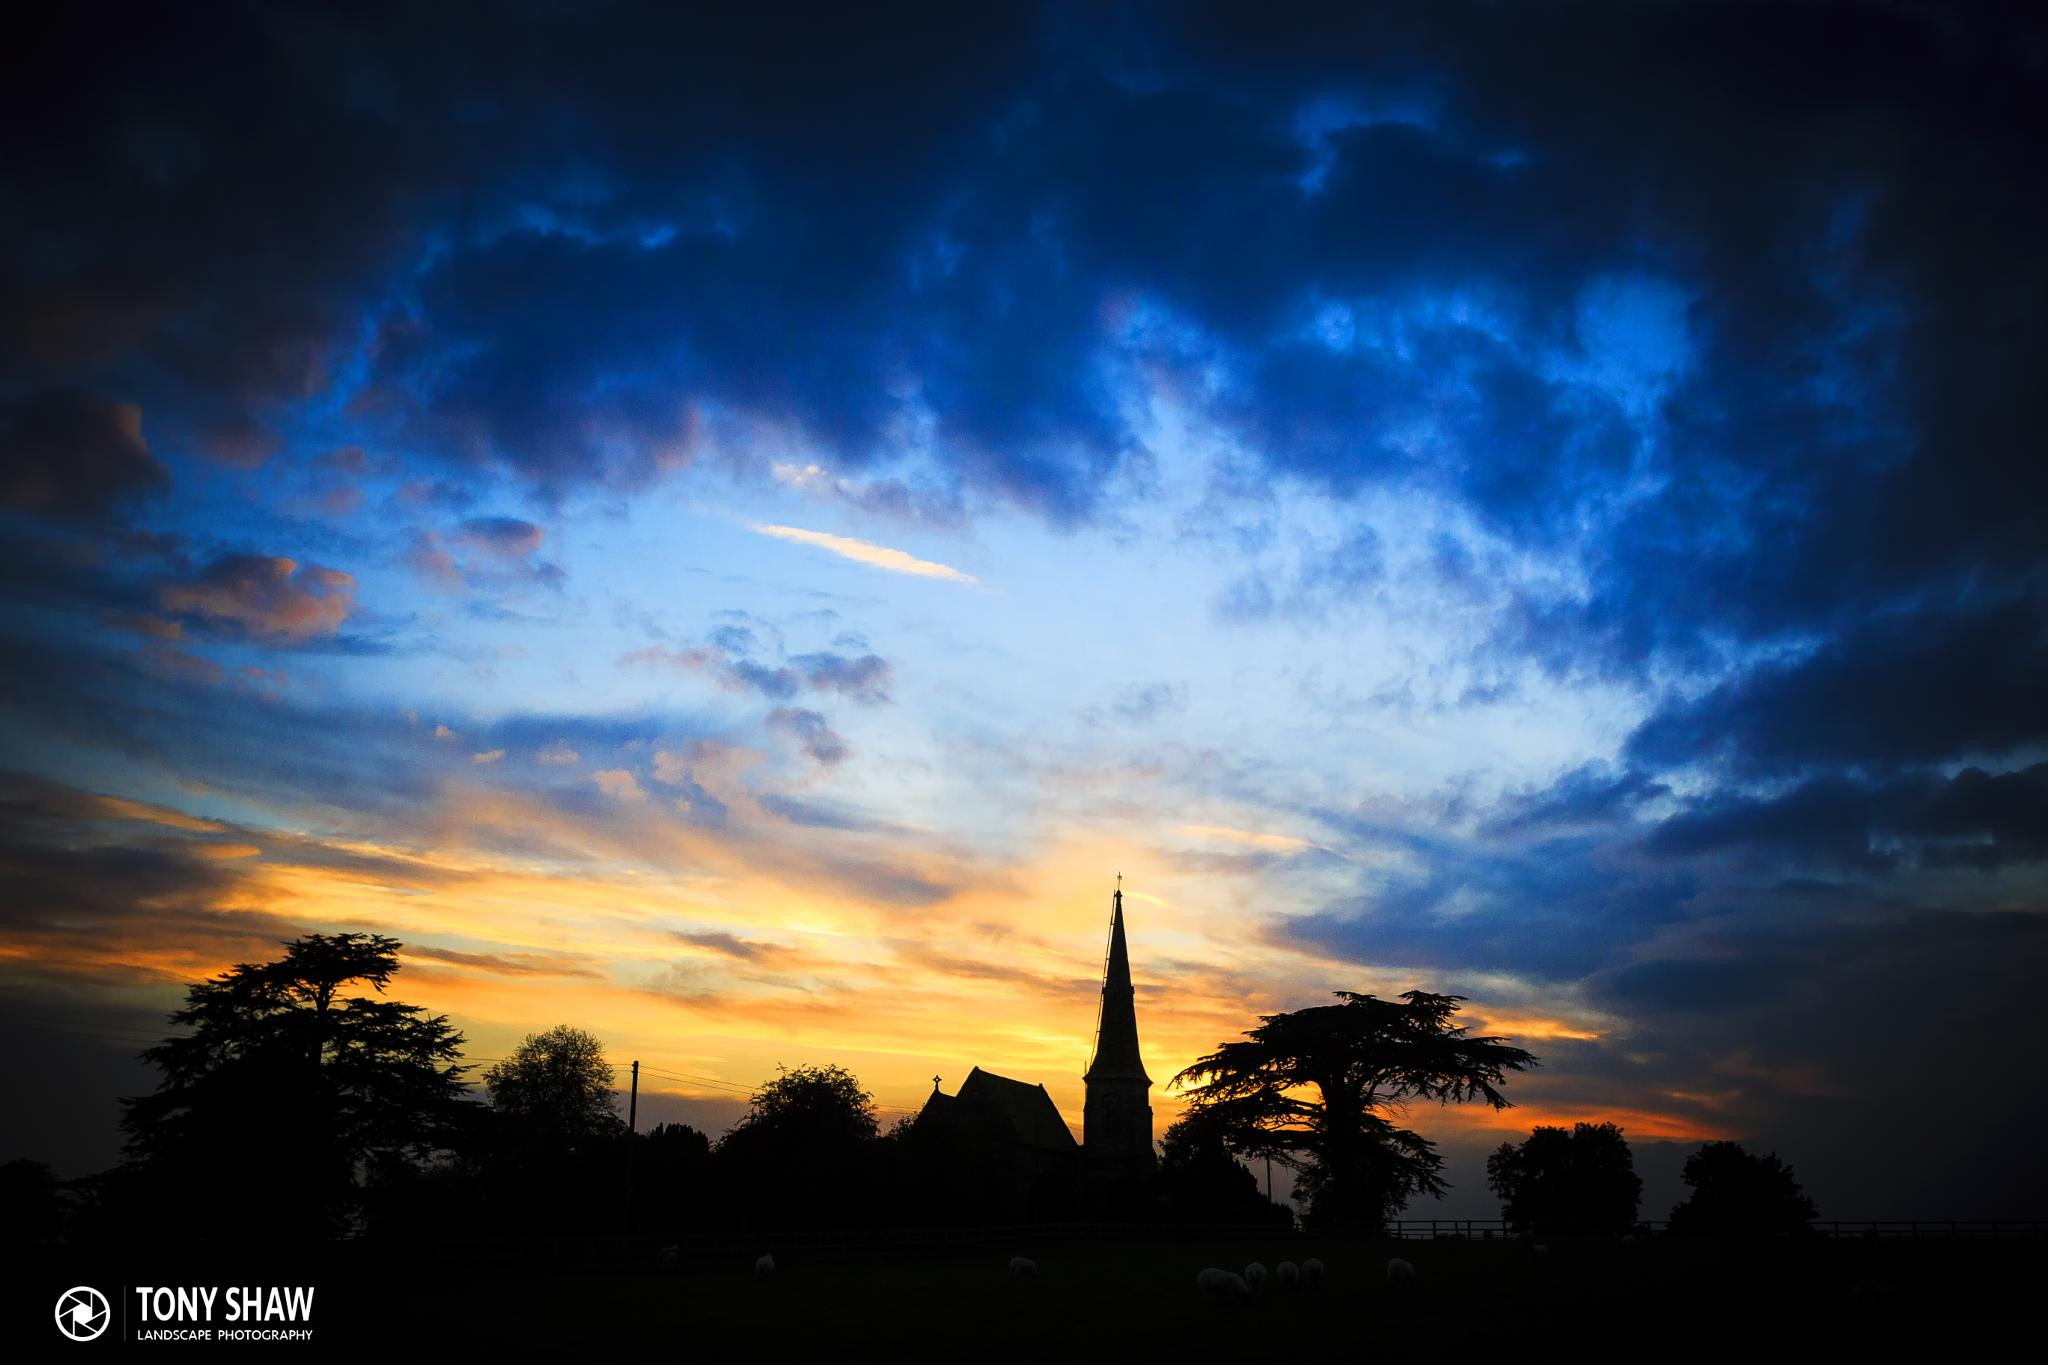 Sunset over Thirkleby Church by Tony Shaw